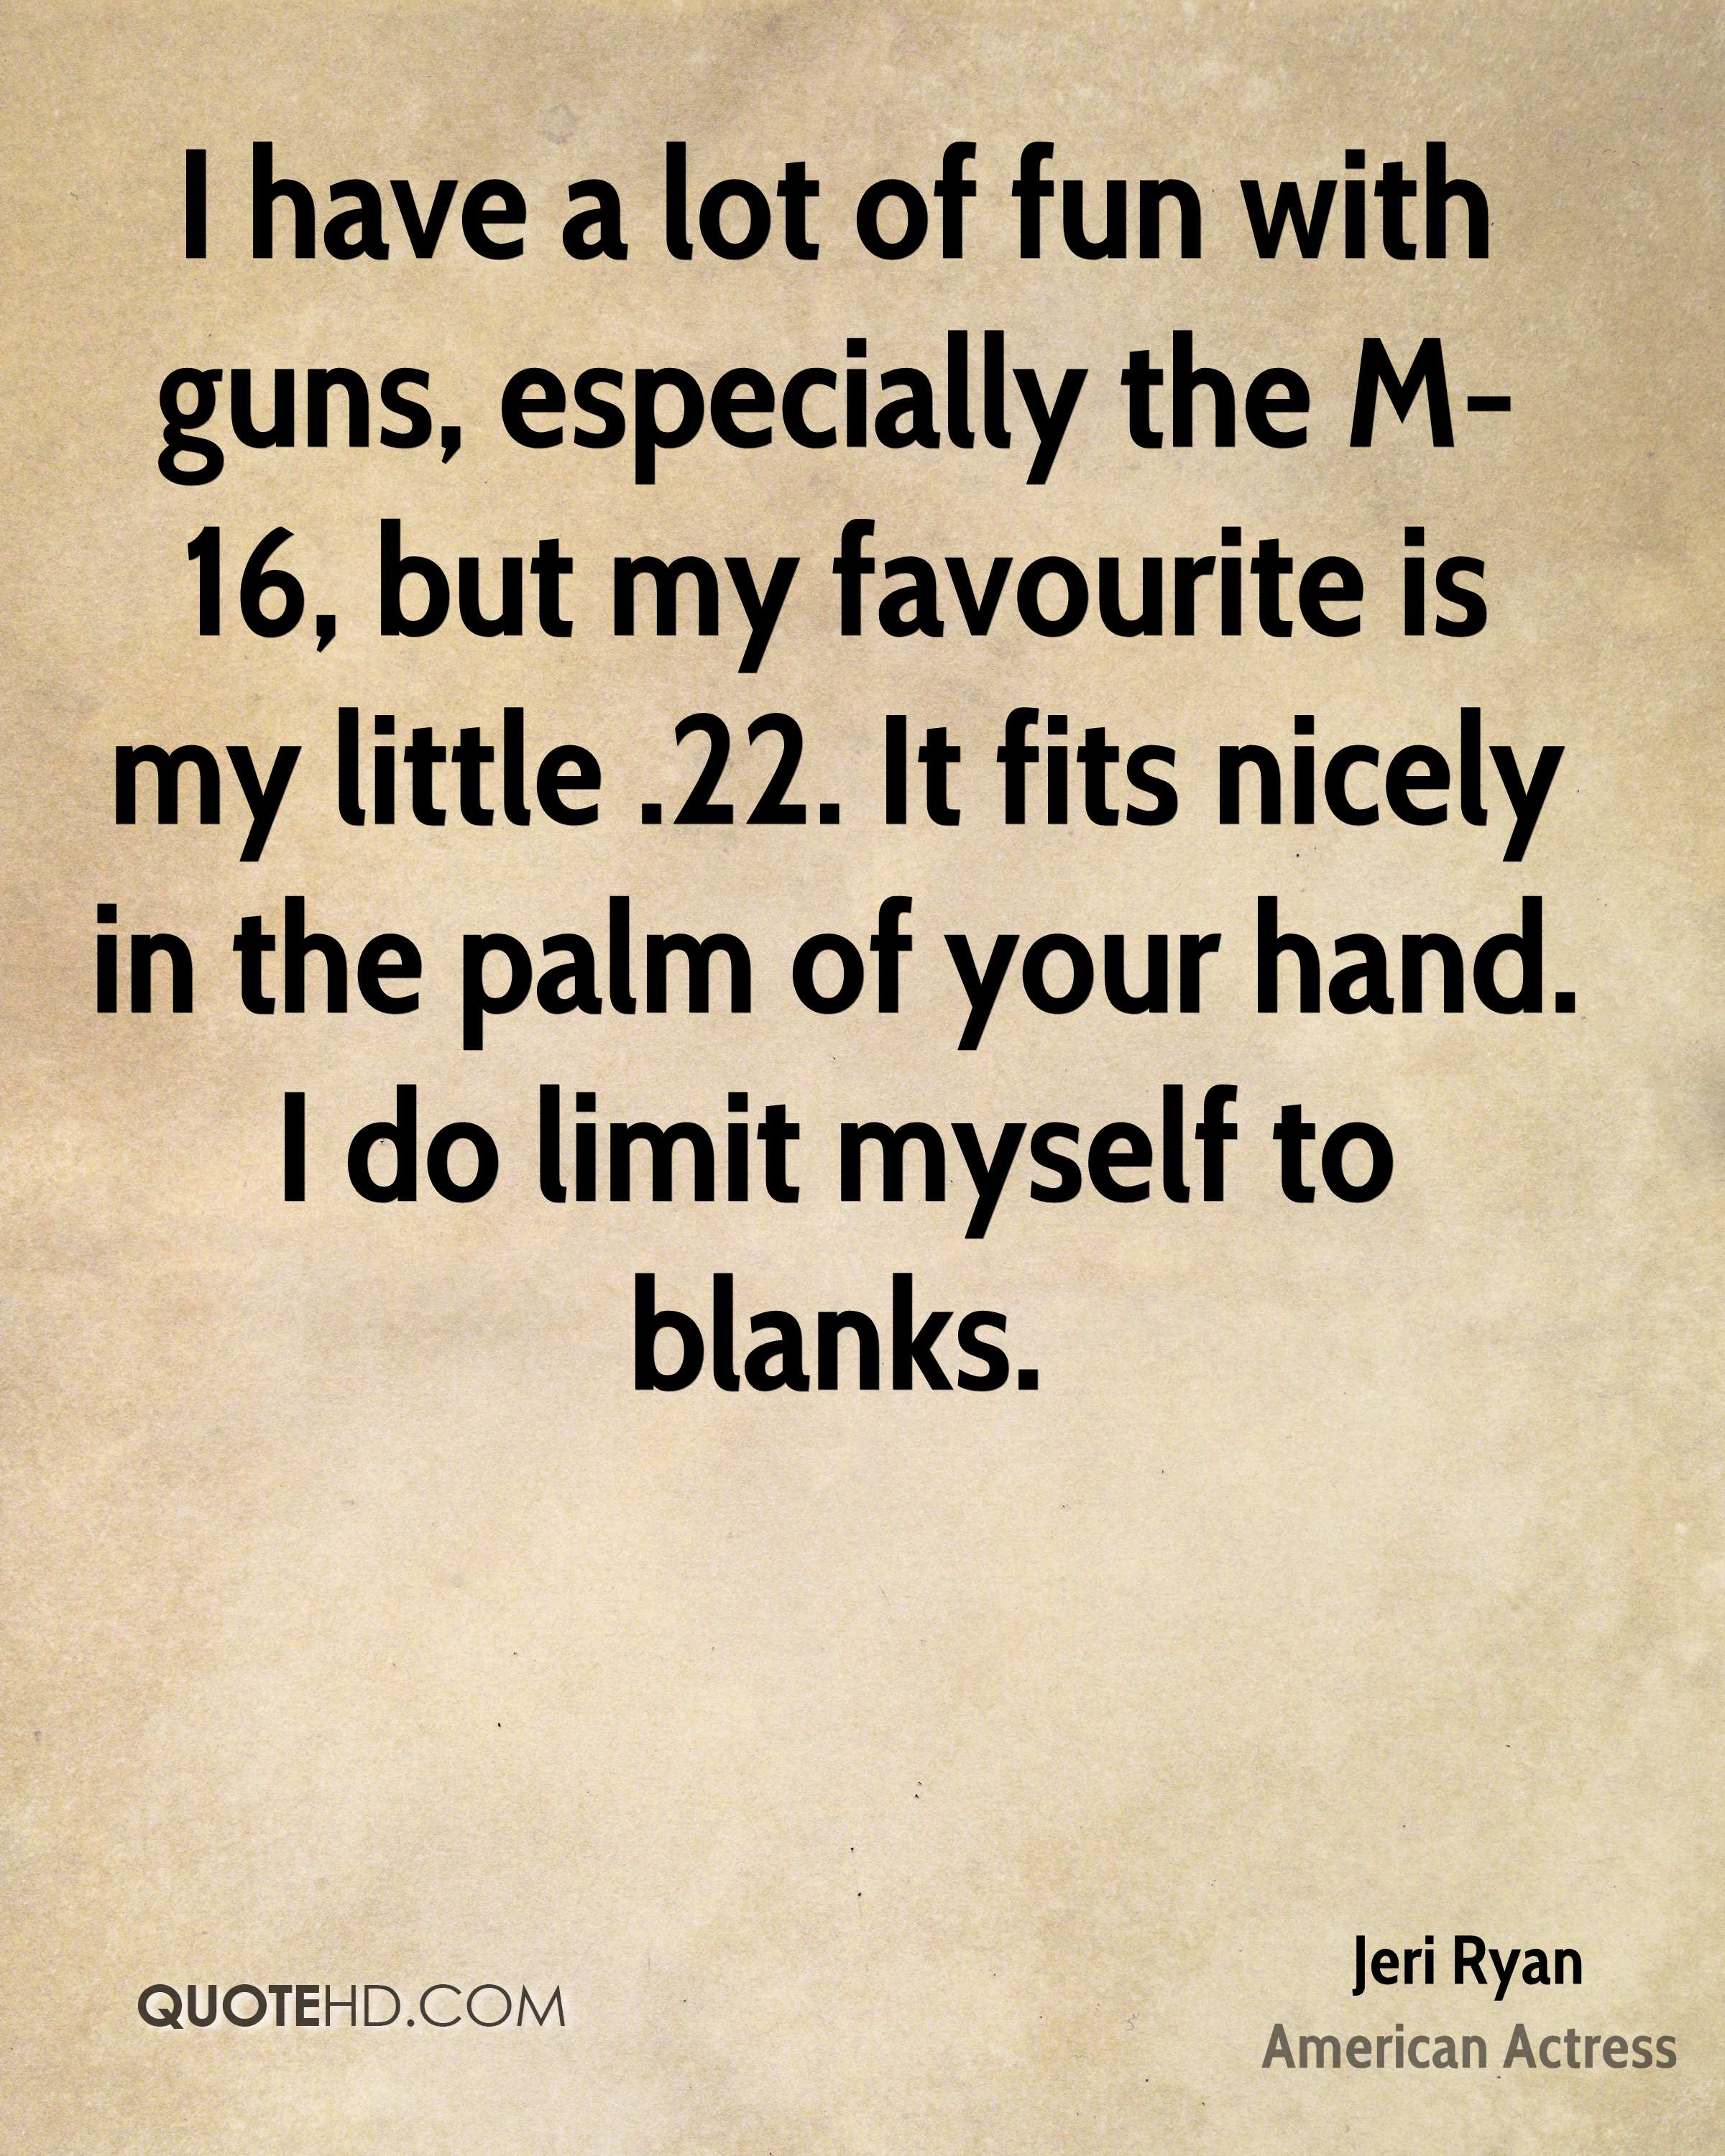 I have a lot of fun with guns, especially the M-16, but my favourite is my little .22. It fits nicely in the palm of your hand. I do limit myself to blanks.